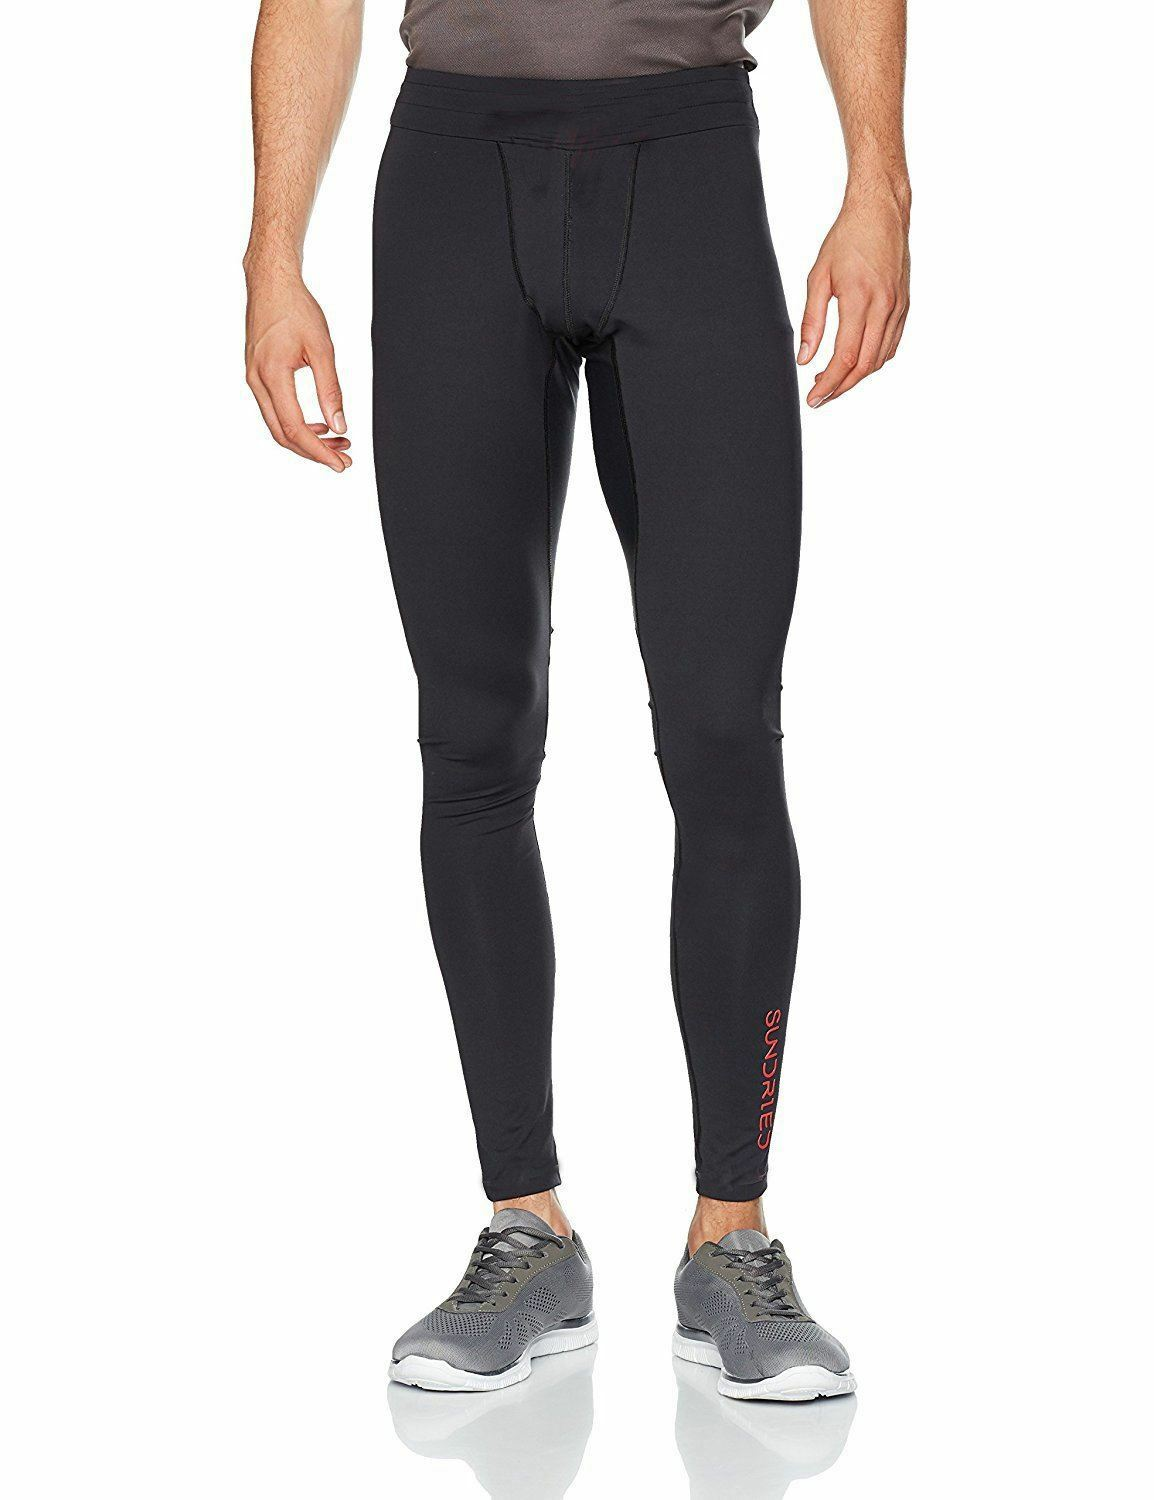 Sundried Mens Pro Running Gym Leggings For Performance Sports Fitness Workout